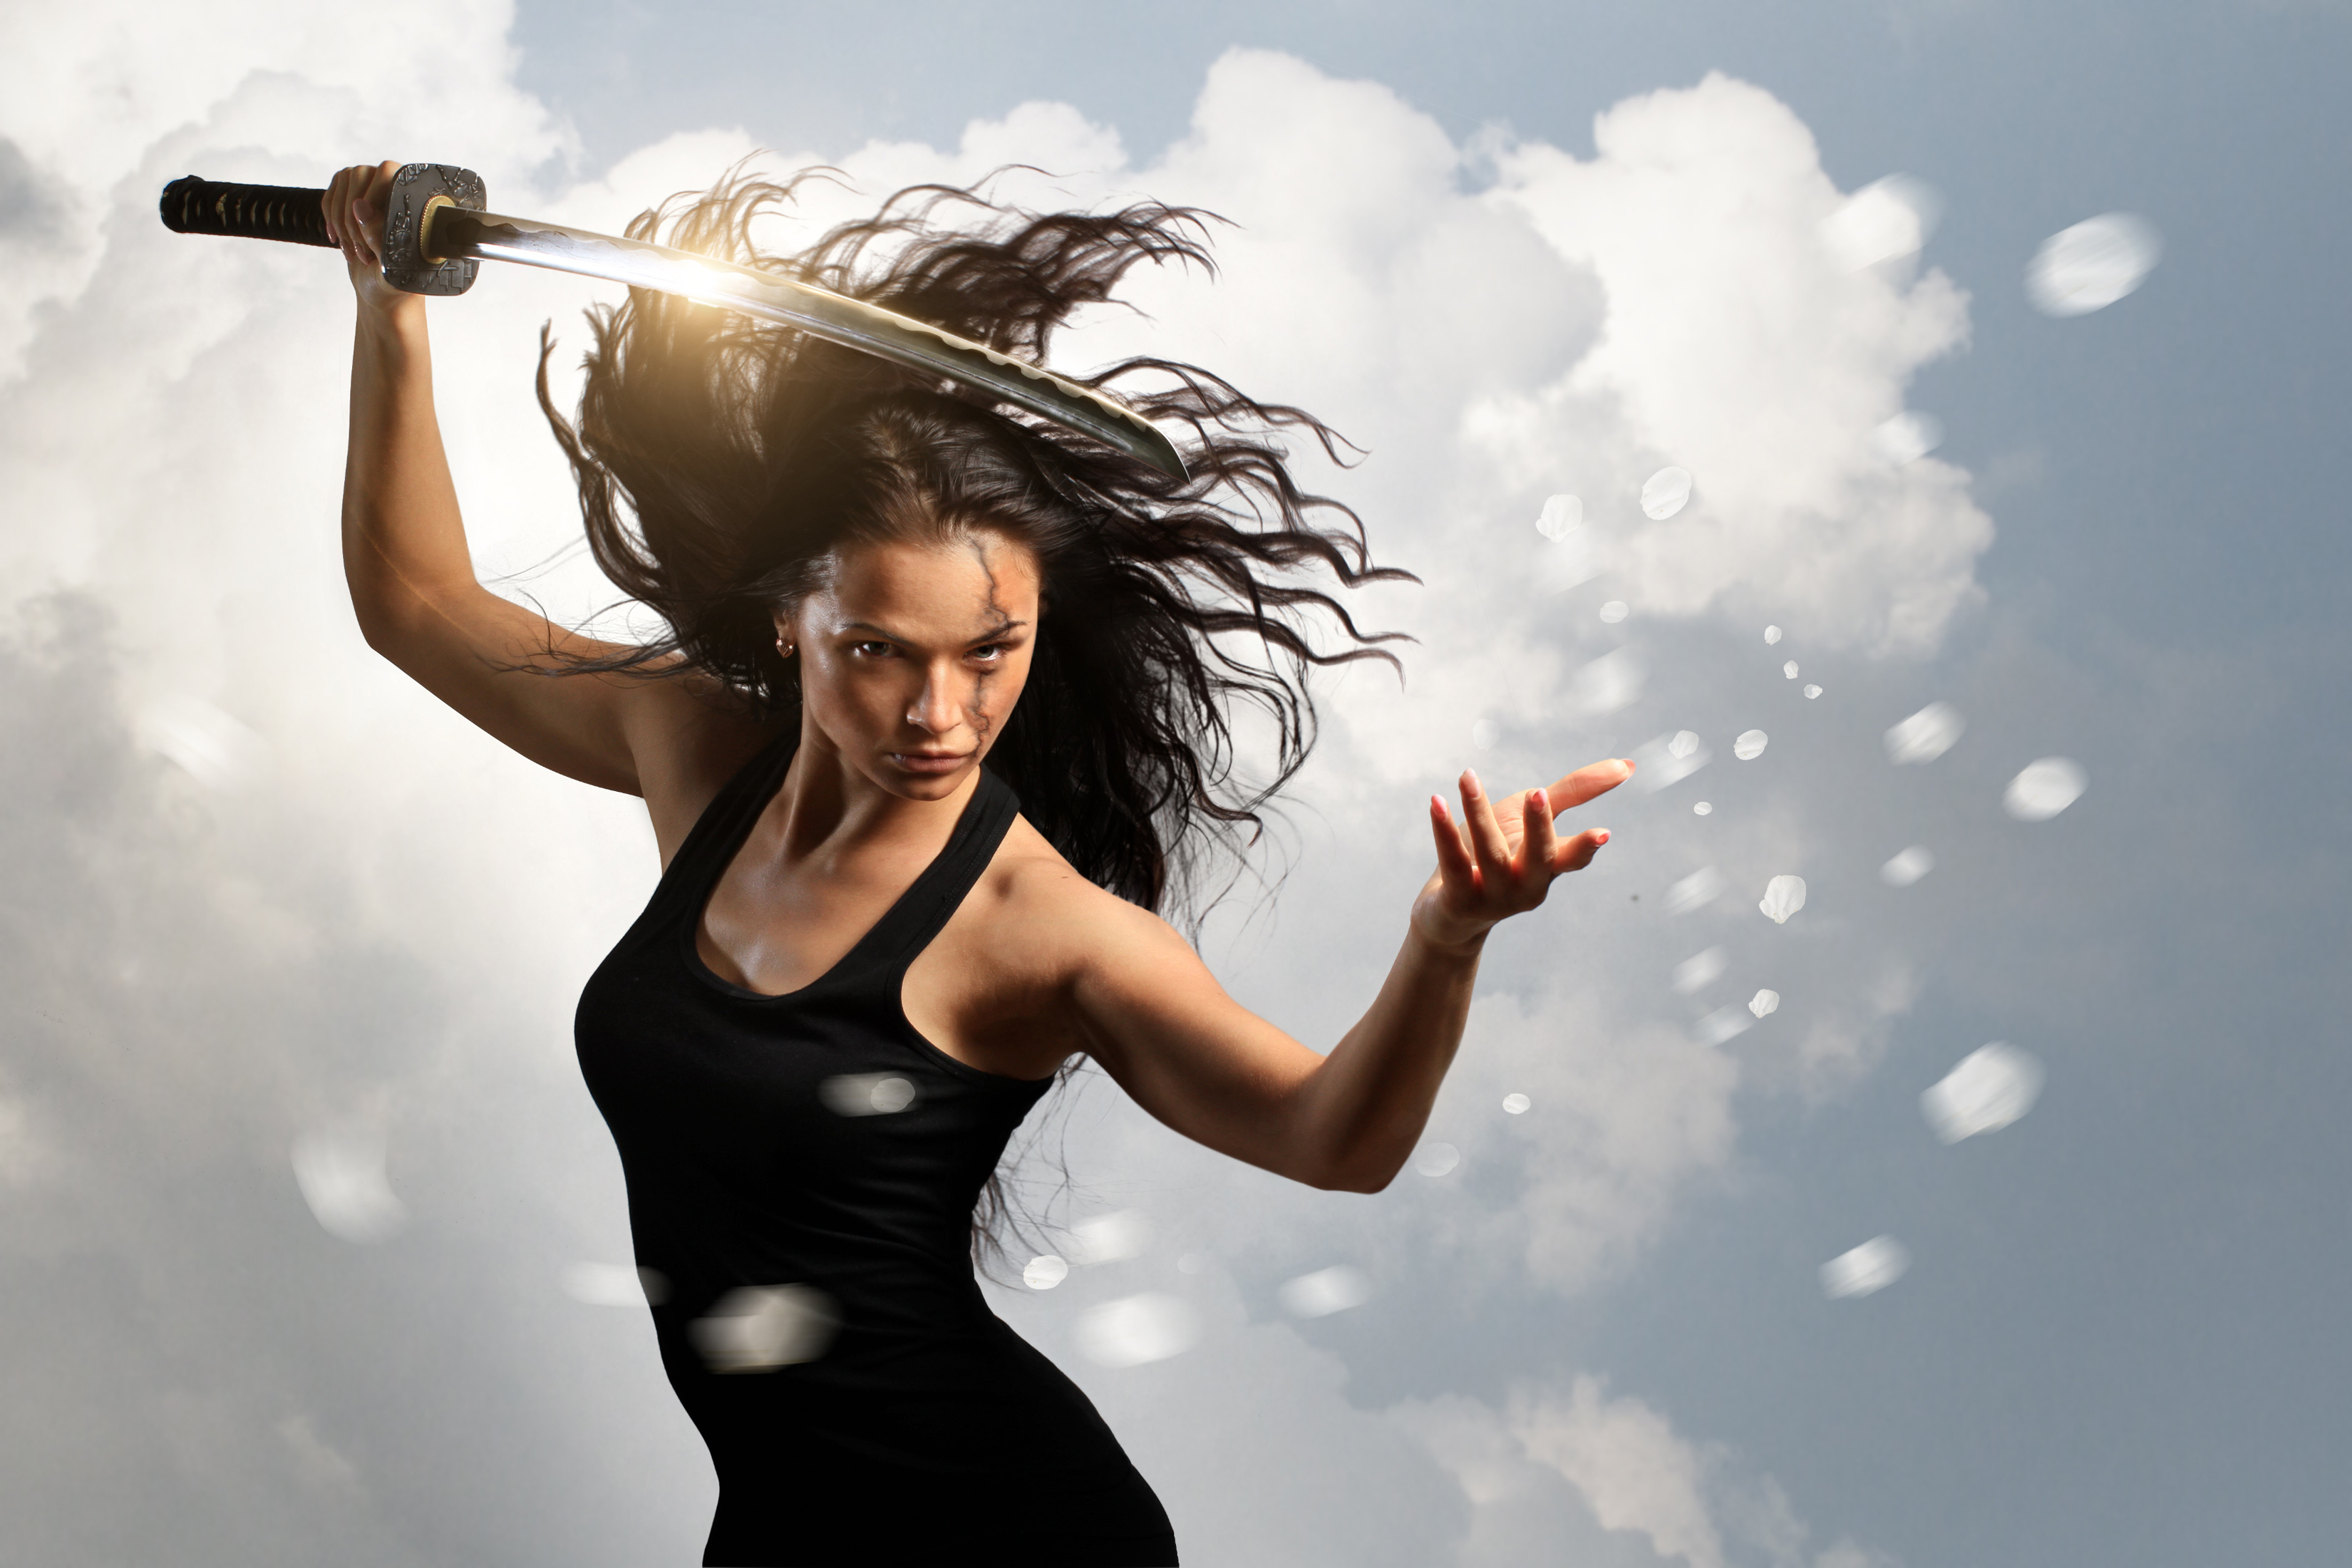 Girl with sword 4k hd girls 4k wallpapers images - Girl with sword wallpaper ...